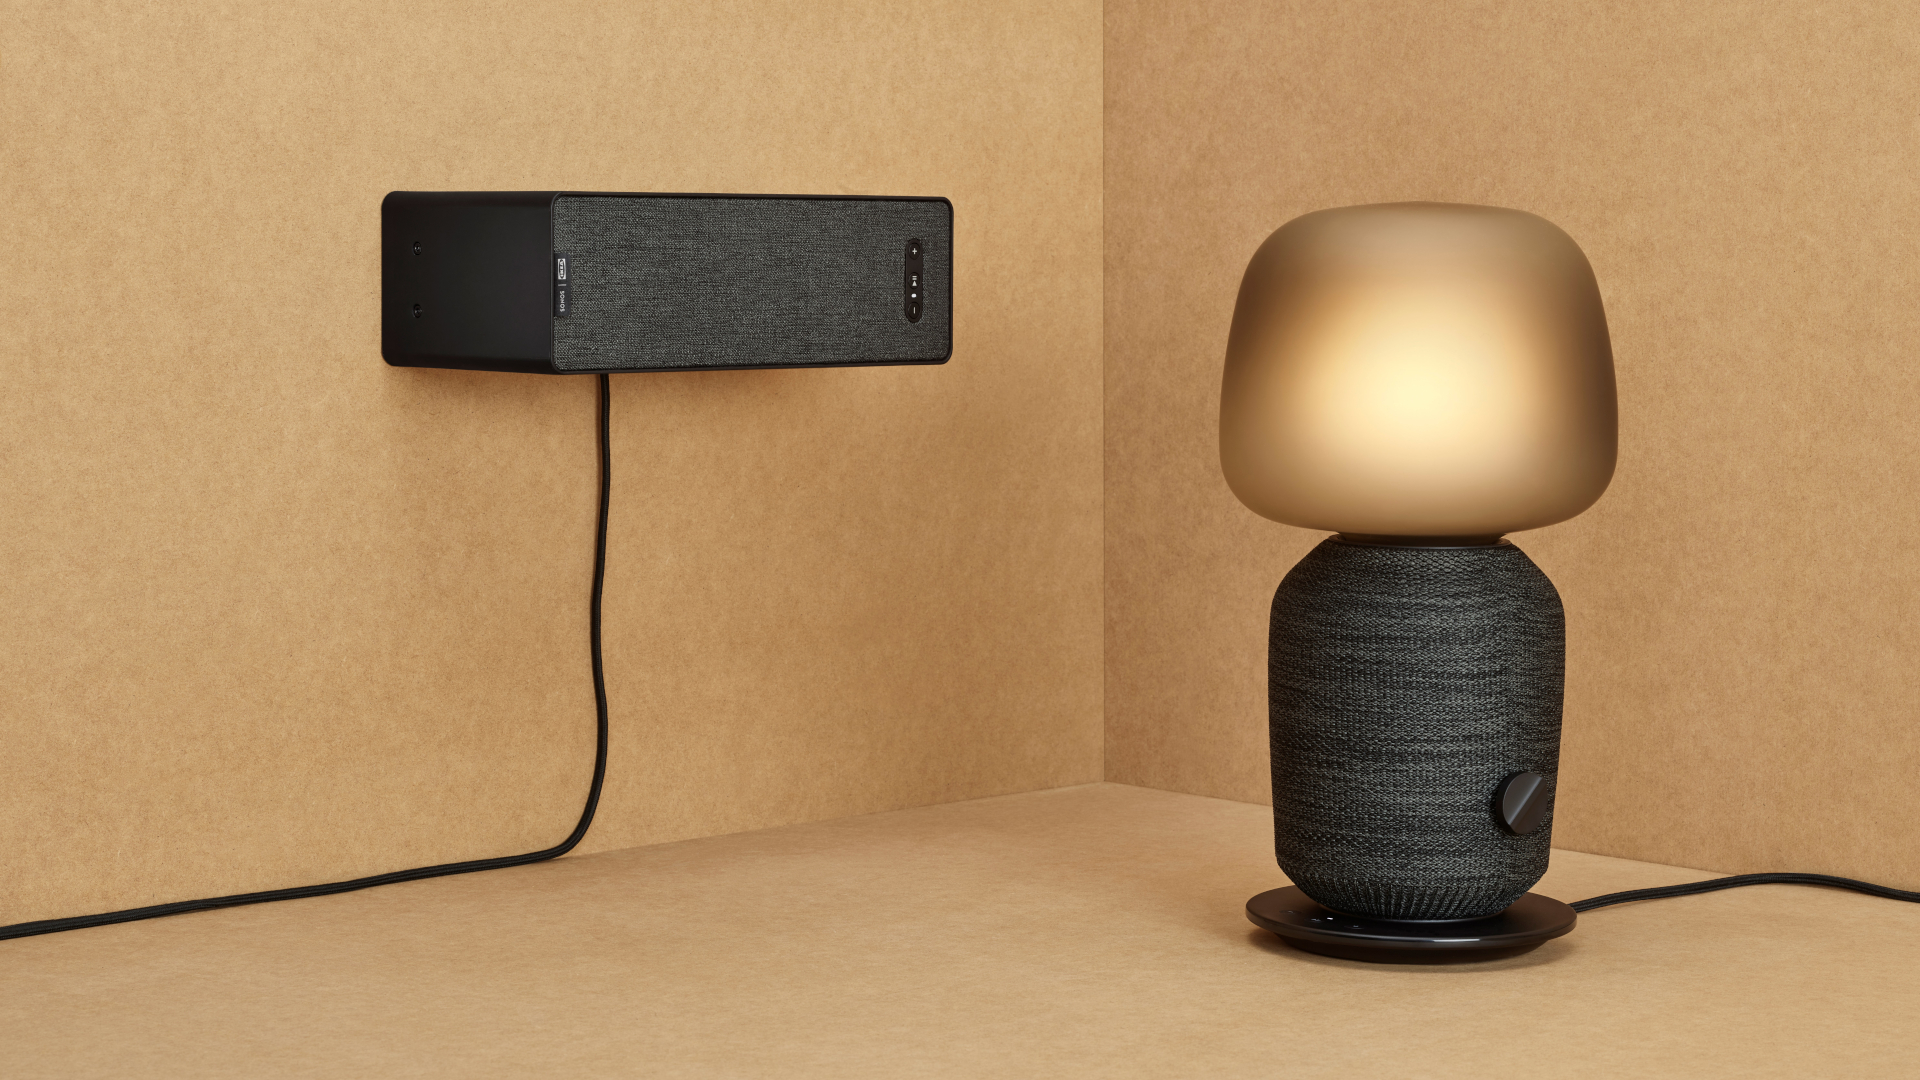 Sonos' IKEA speakers are about to get easier to control